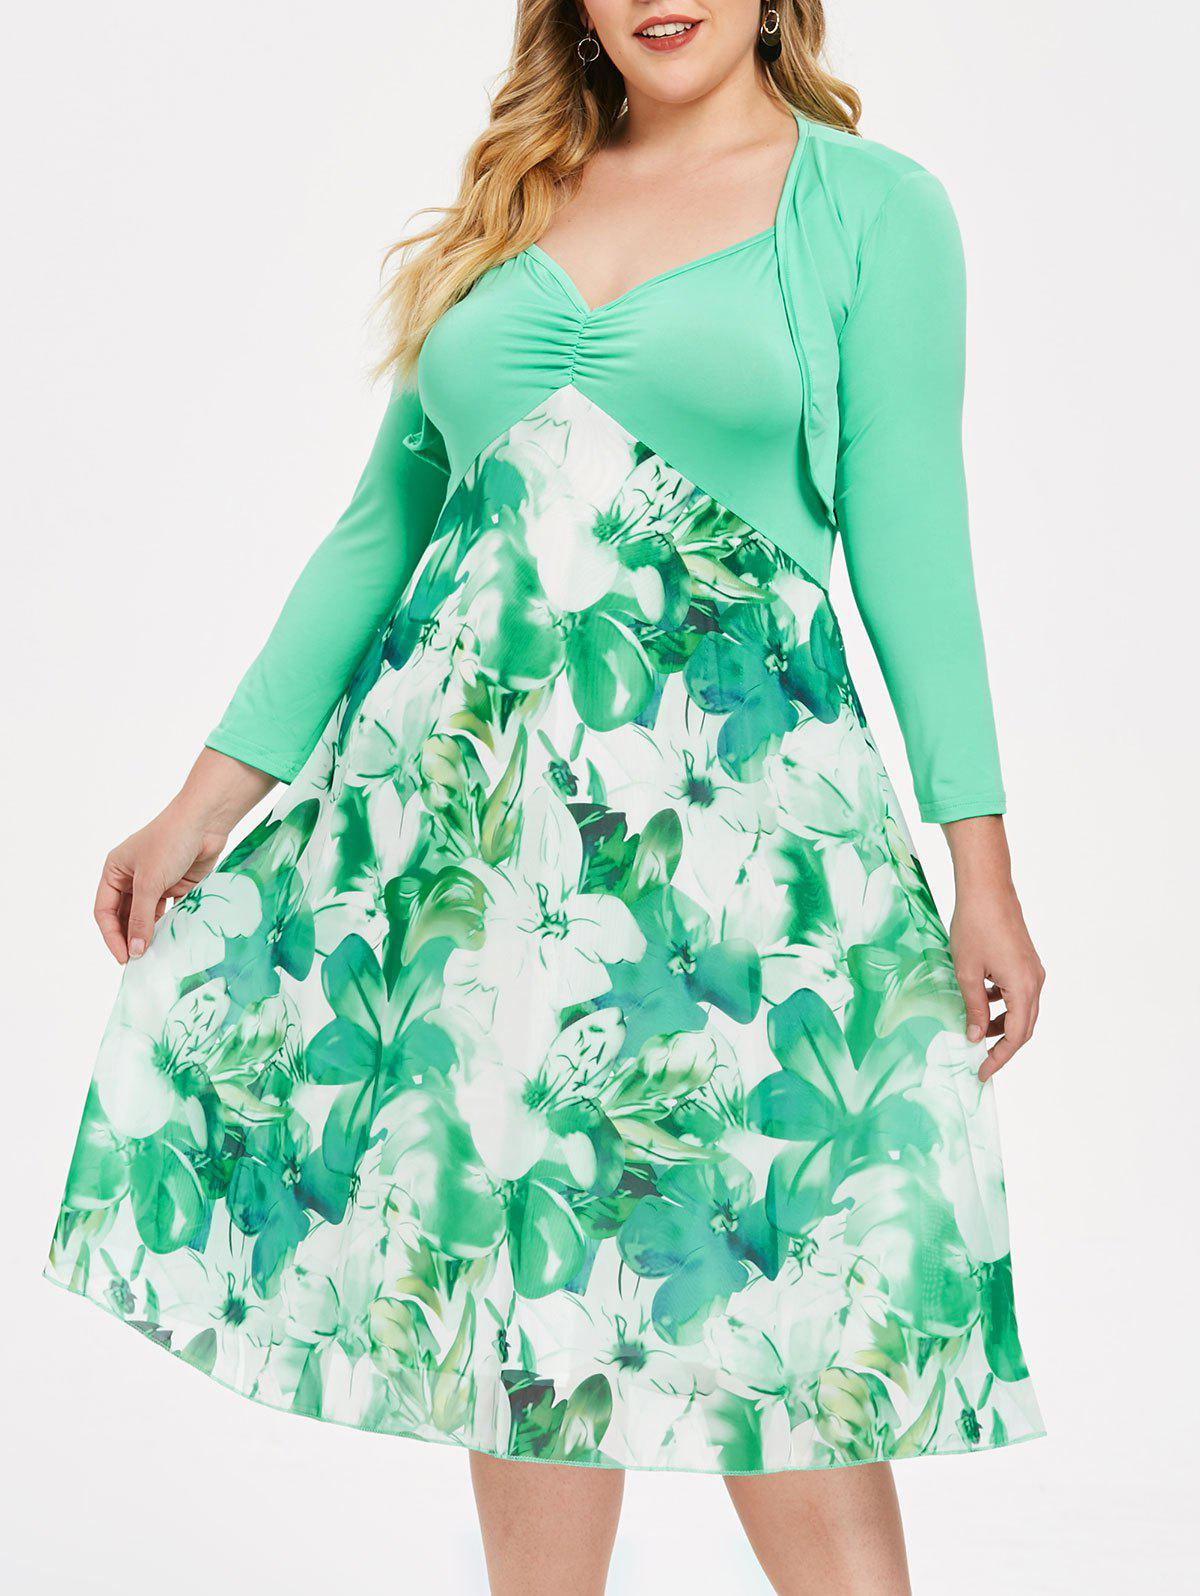 Discount Floral Print Plus Size Chiffon Slip Dress with Coat